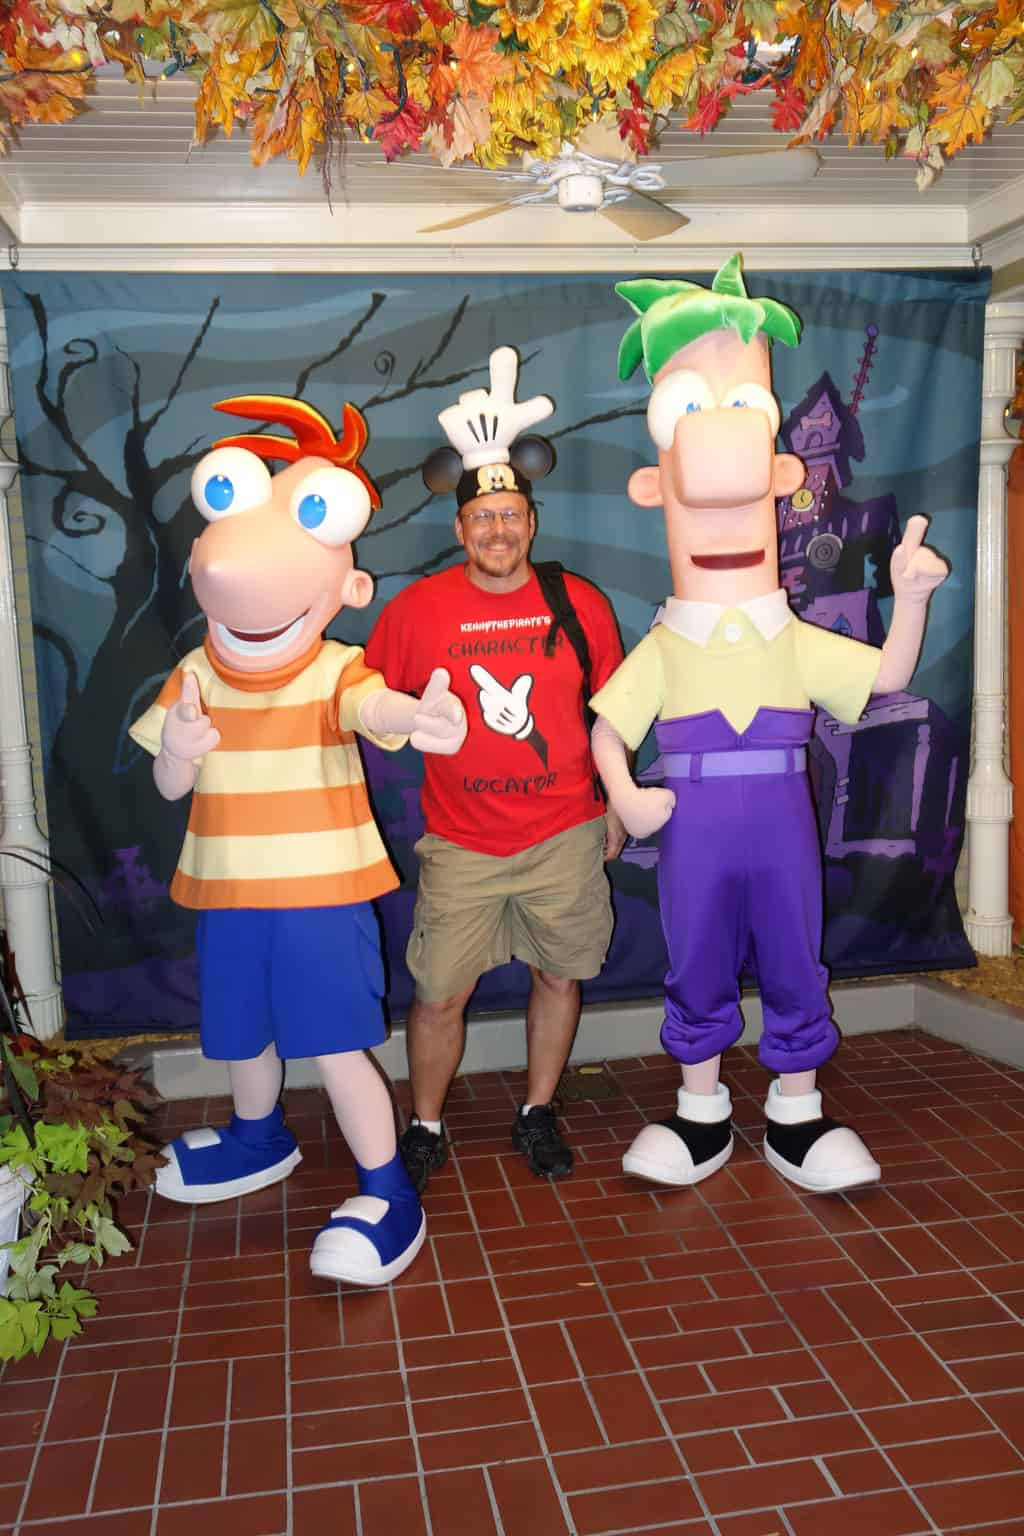 phineas and ferb archives - kennythepirate